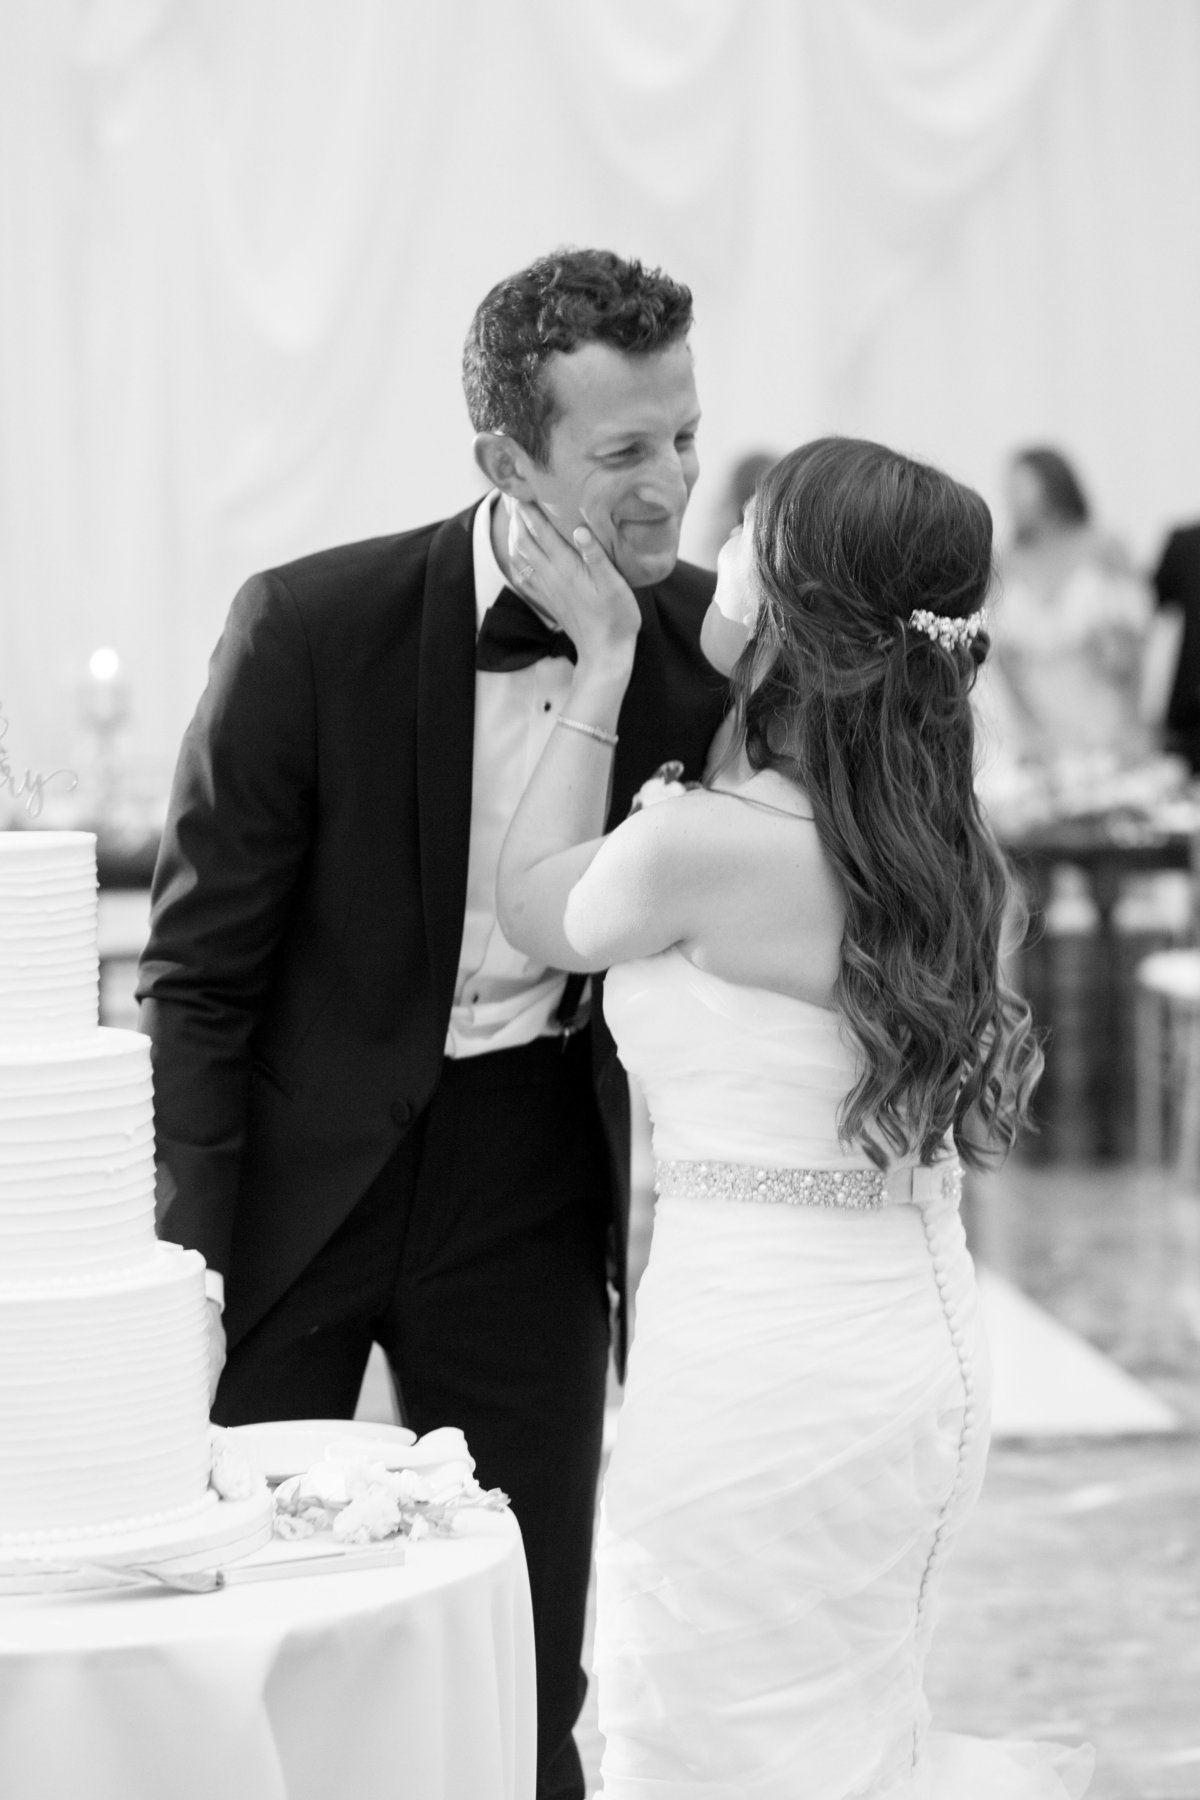 Nicole and Paul Wedding - Natalie Probst Photography 684